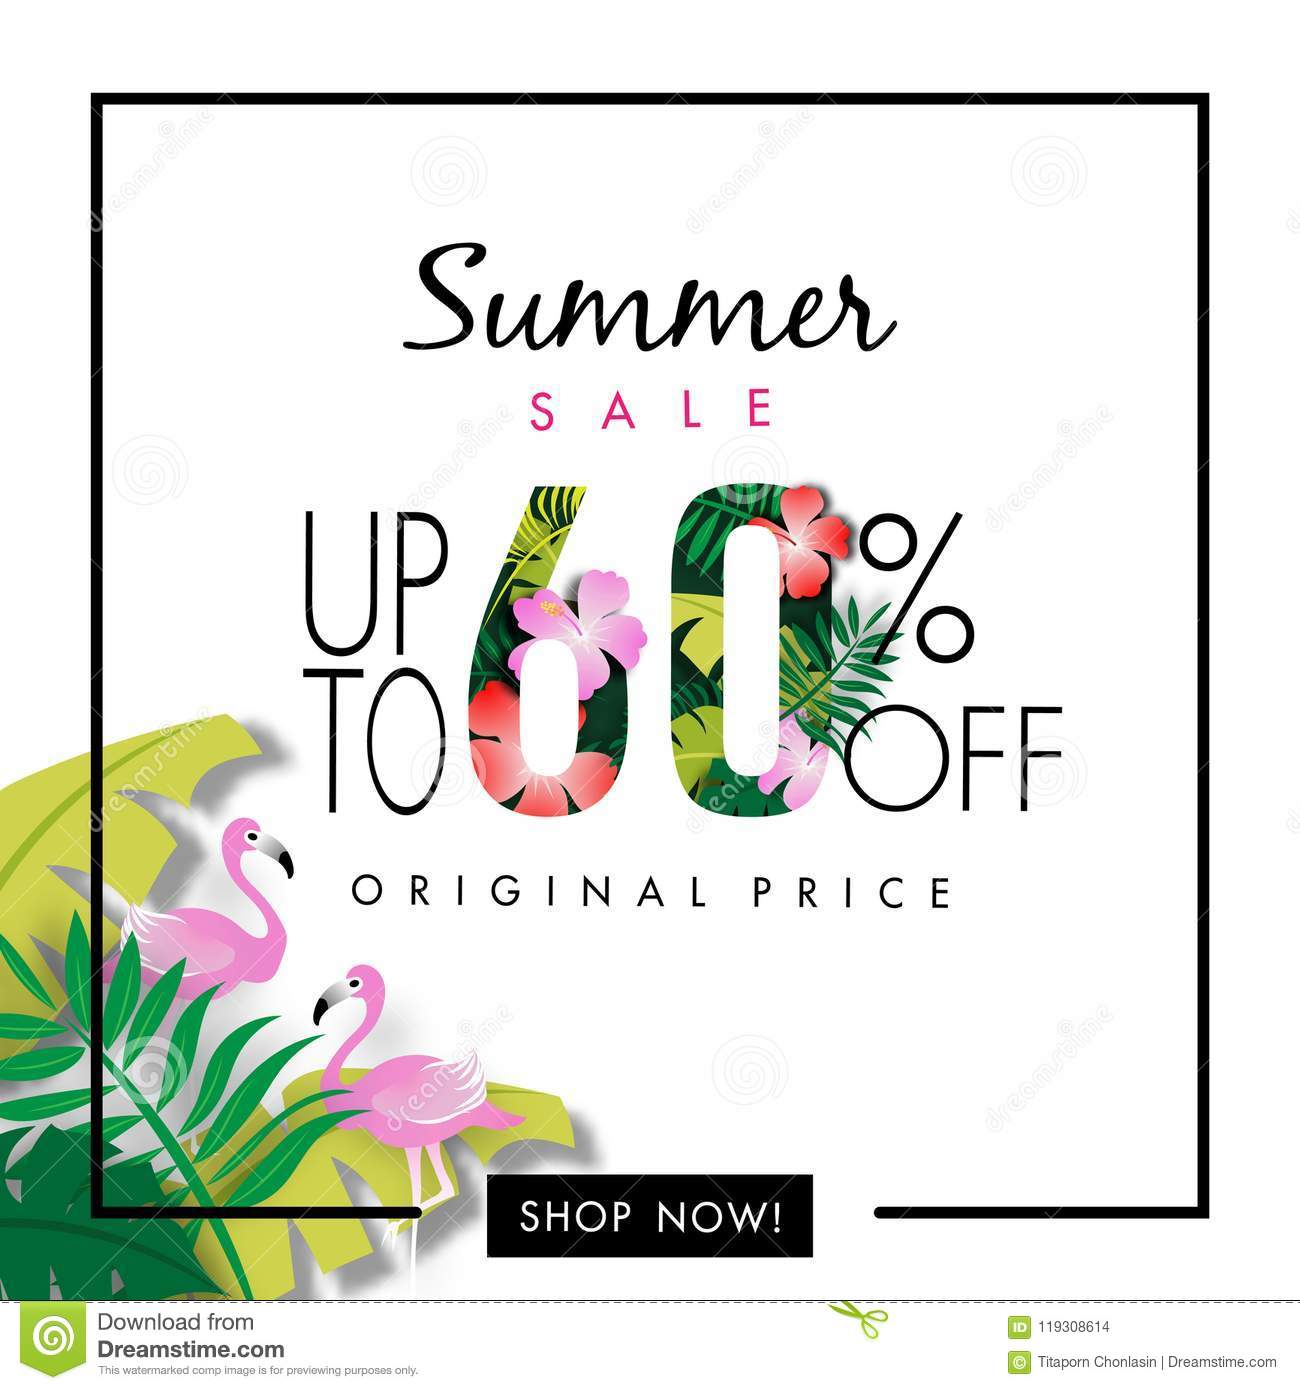 Summer Sale Background, Sixty Percent Sale Off, Tropical Design Vector